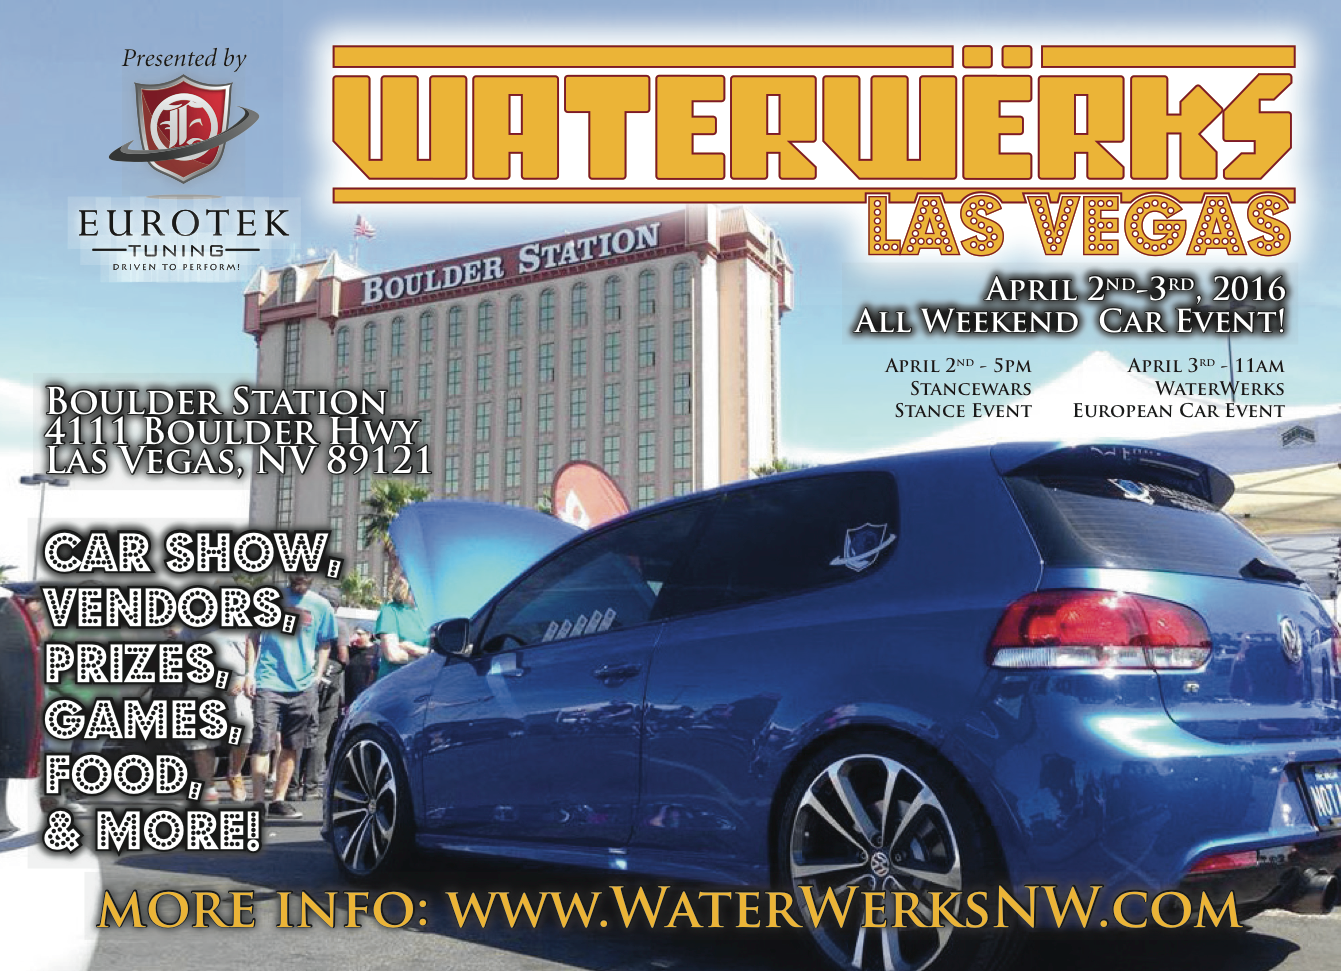 WaterWerks NW - Vw car show las vegas